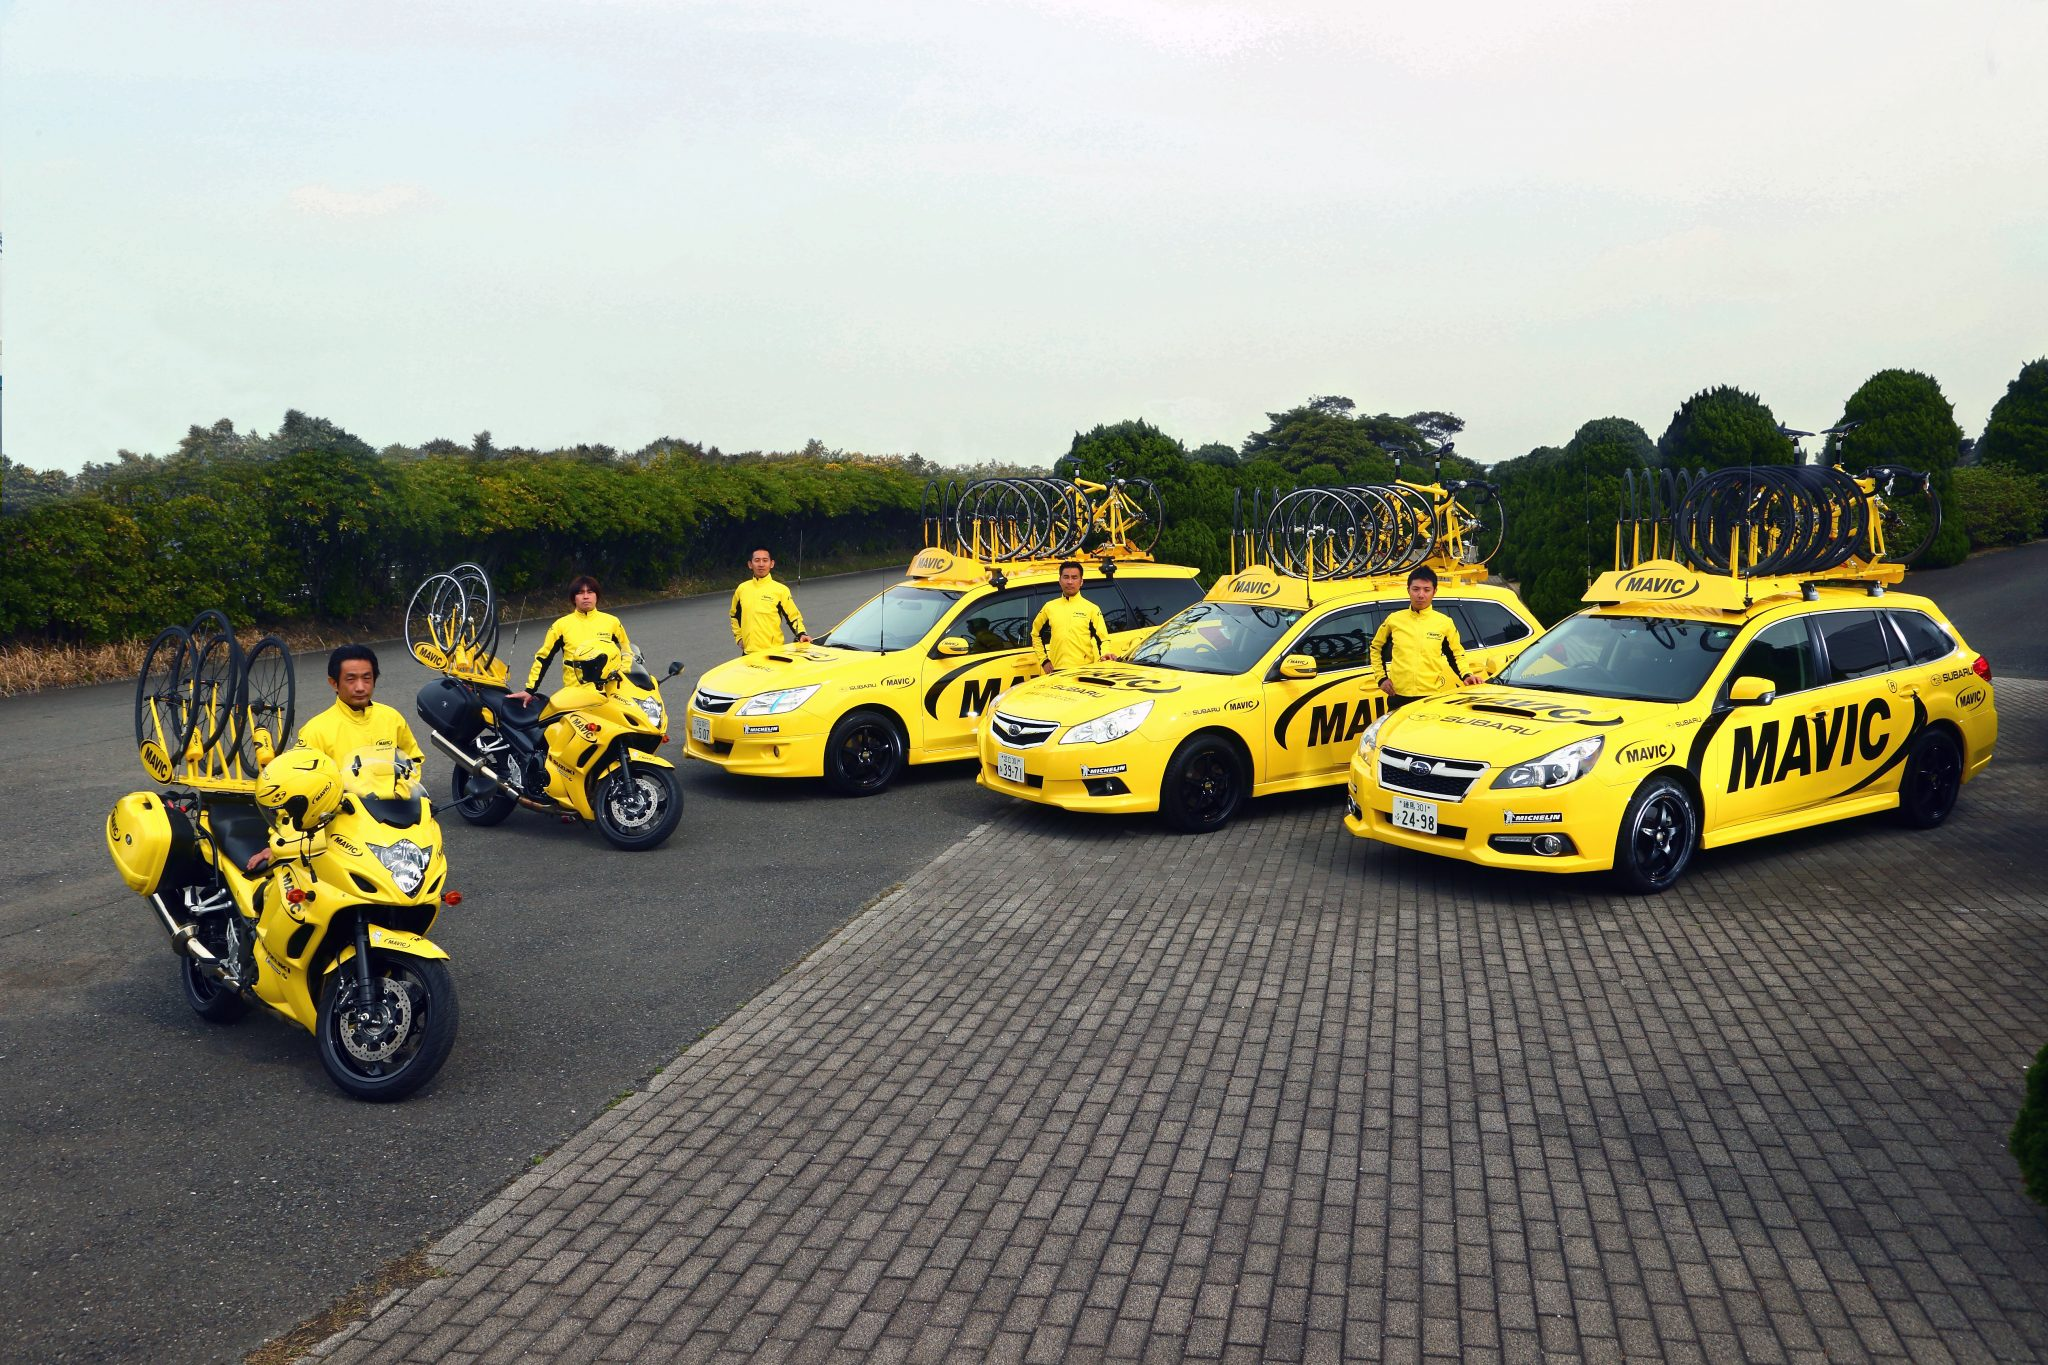 MOTO MAVIC CARS_Staff_3